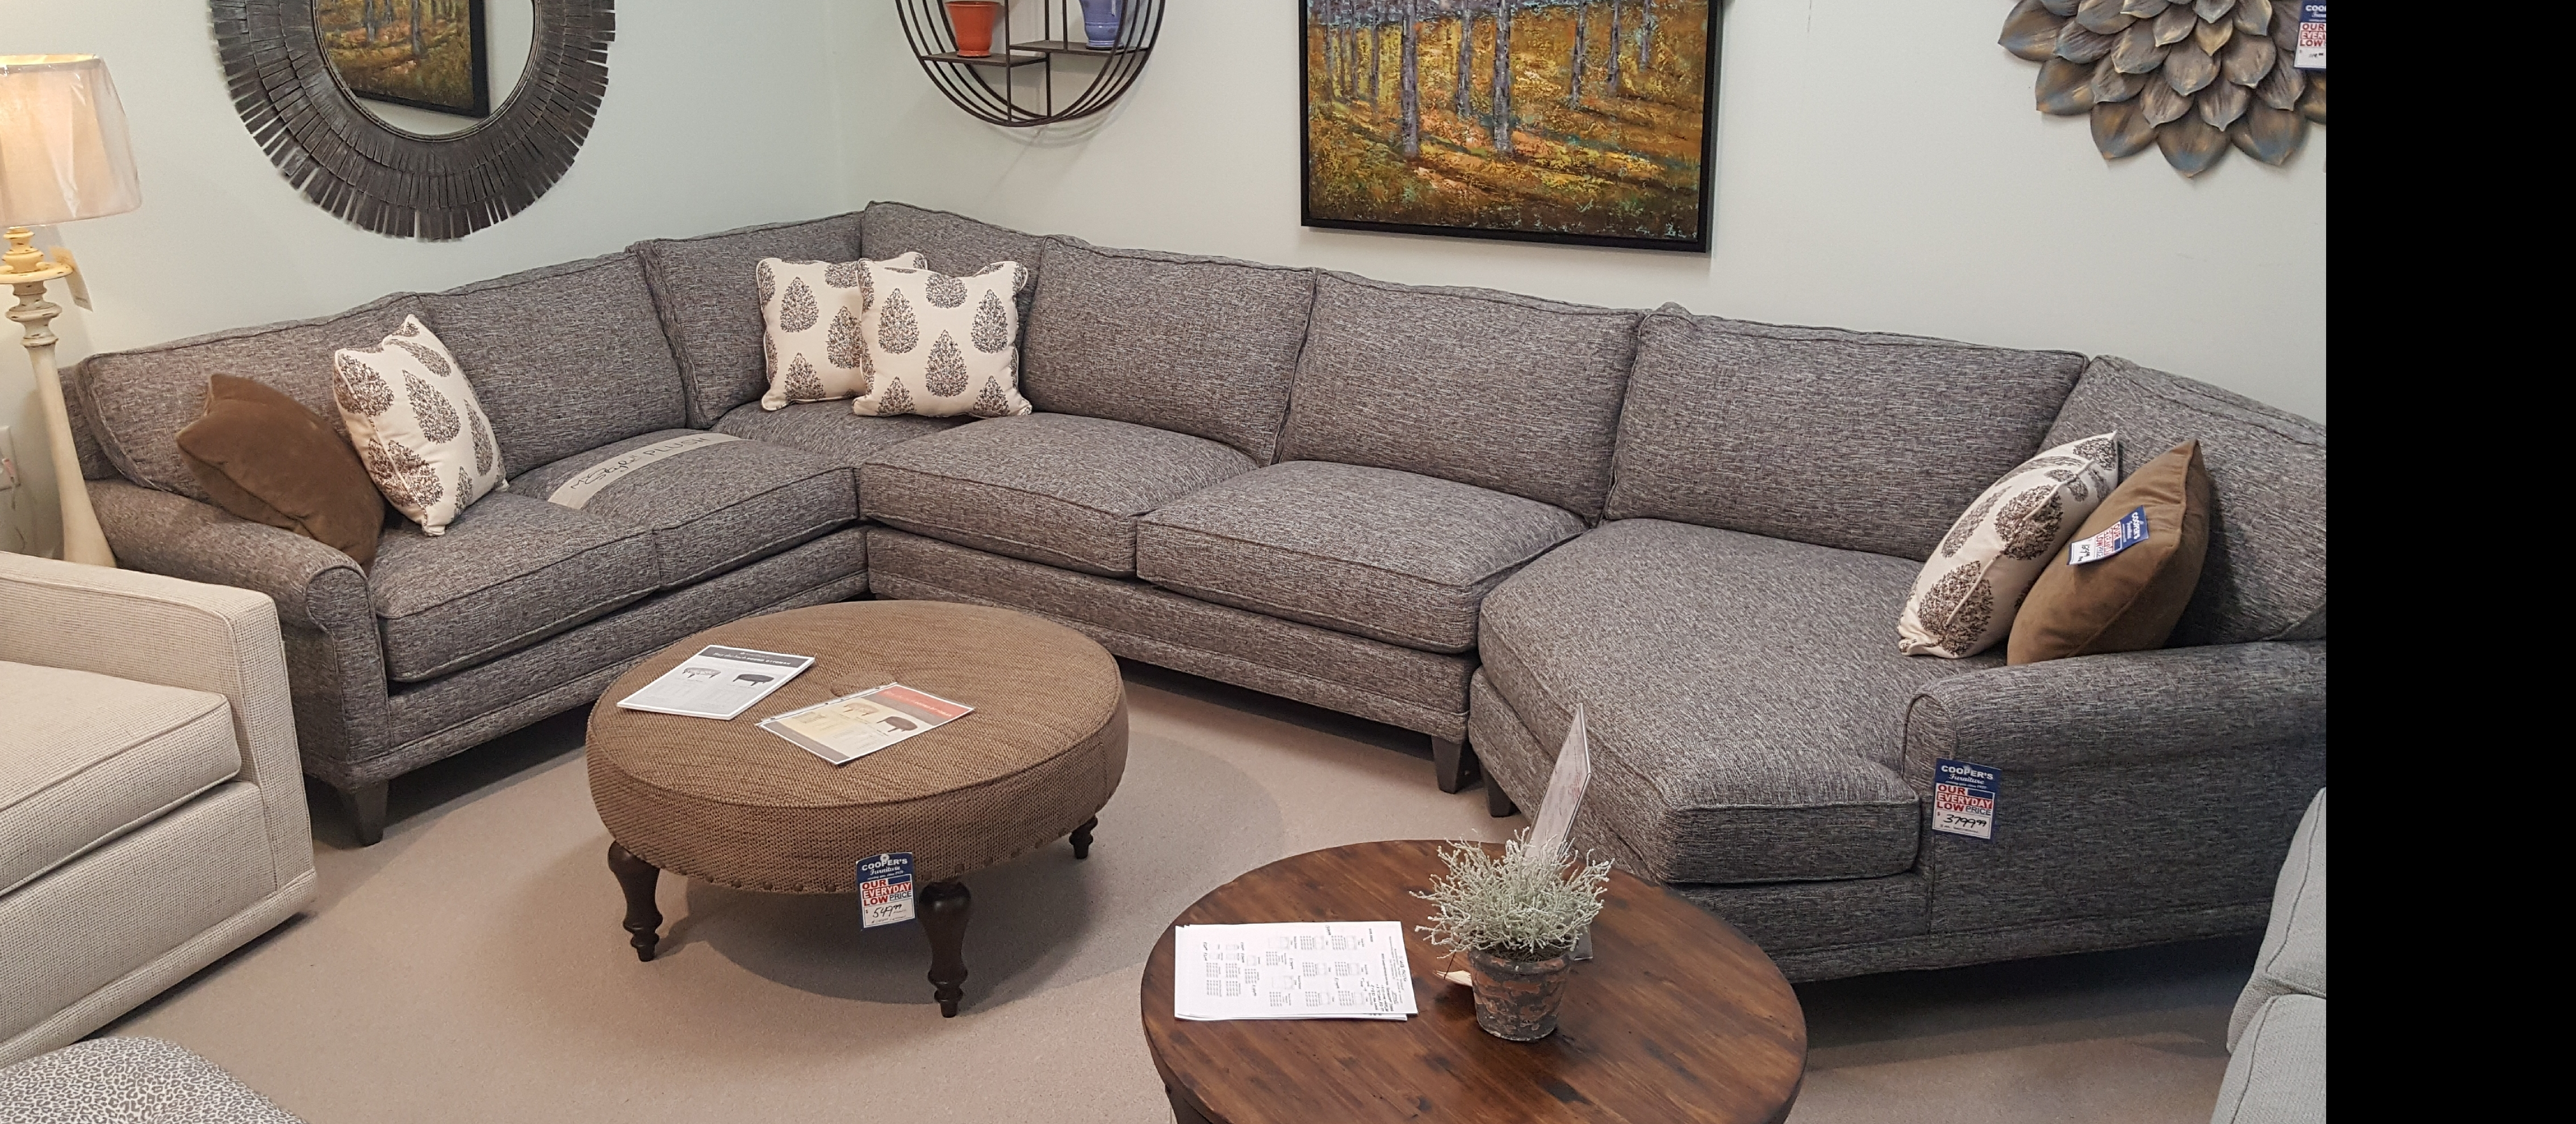 Living Room Furniture Cary Nc   Sofas, Recliners, Sectionals Regarding Durham Region Sectional Sofas (View 2 of 10)